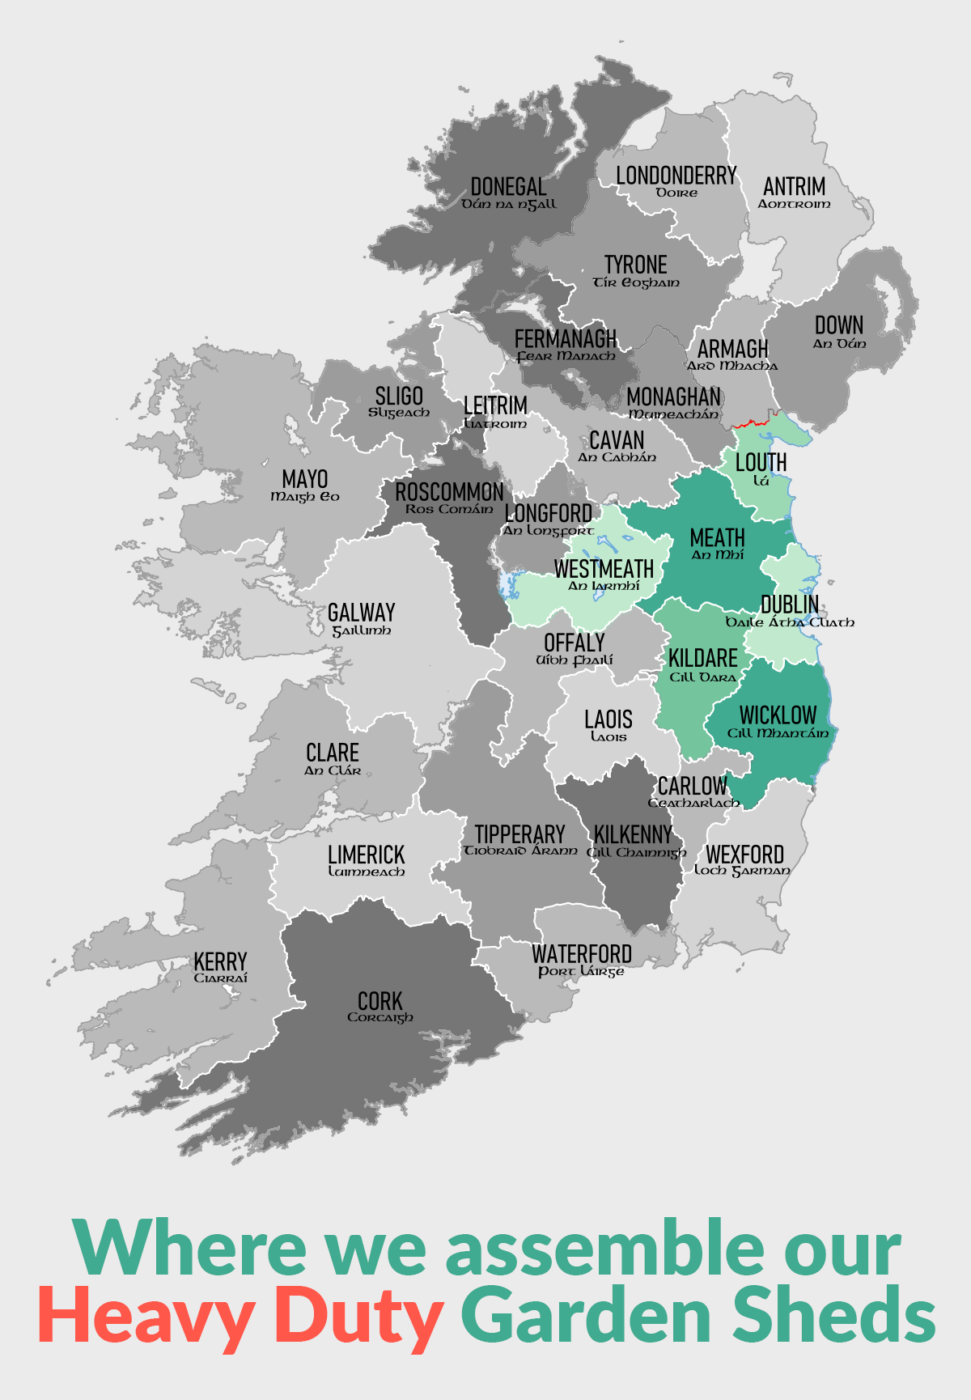 A map of Ireland that reads 'where we assemble our heavy duty Garden Sheds', with the counties Dublin, Meath, Louth, Westmeath, Kildare and Wicklow